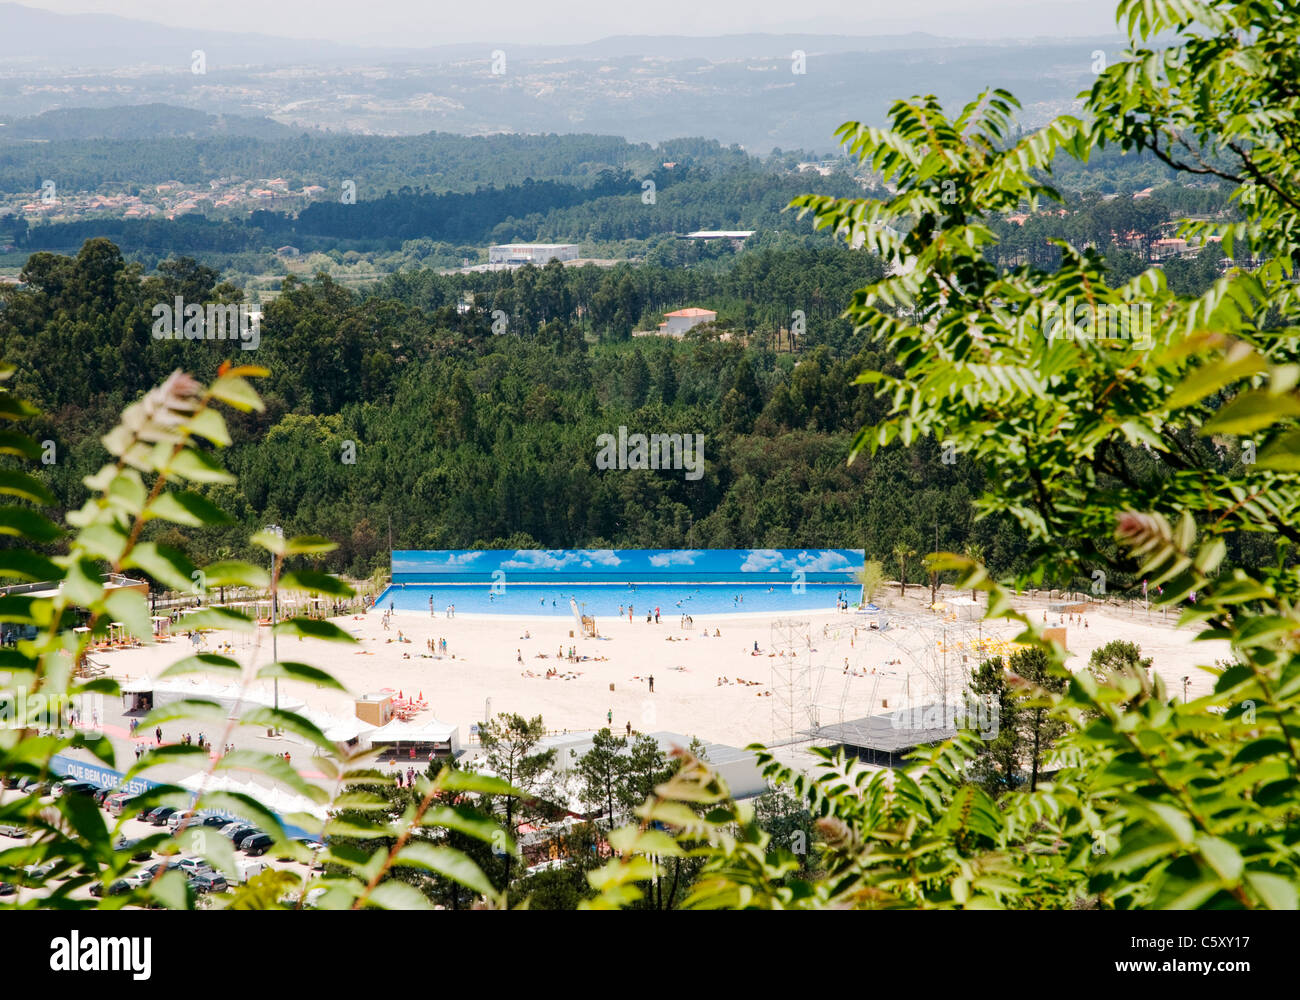 The artificial beach, known as 'Live Beach' at Mangualde, in the interior of northern Portugal, - Stock Image